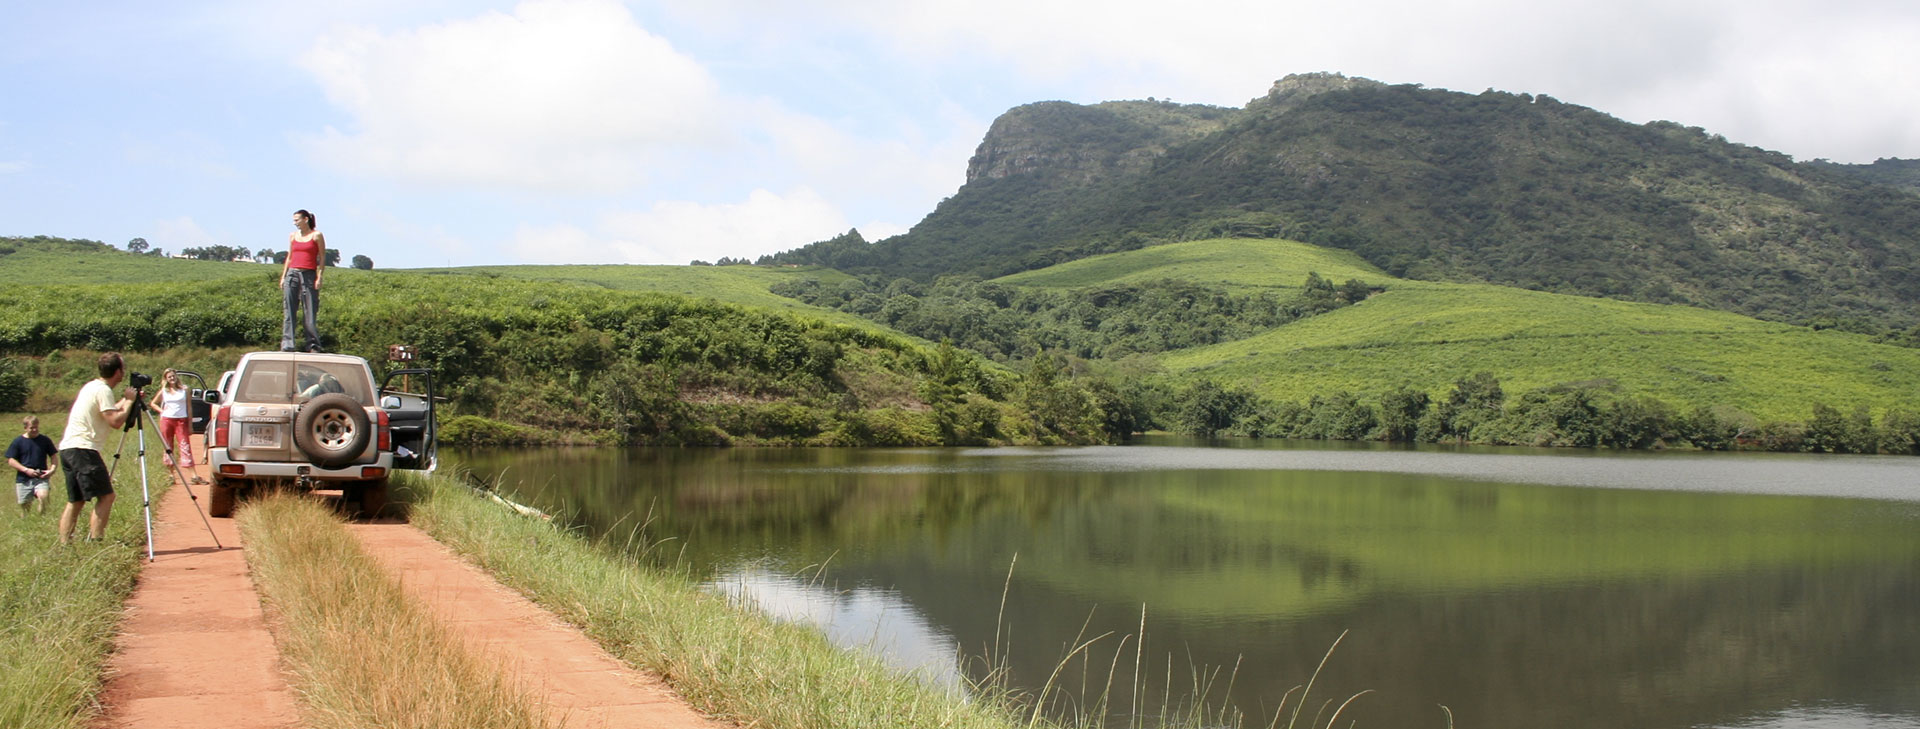 Short and medium hiking trails are available in the Village of Haenertsburg and Magoebaskloof.